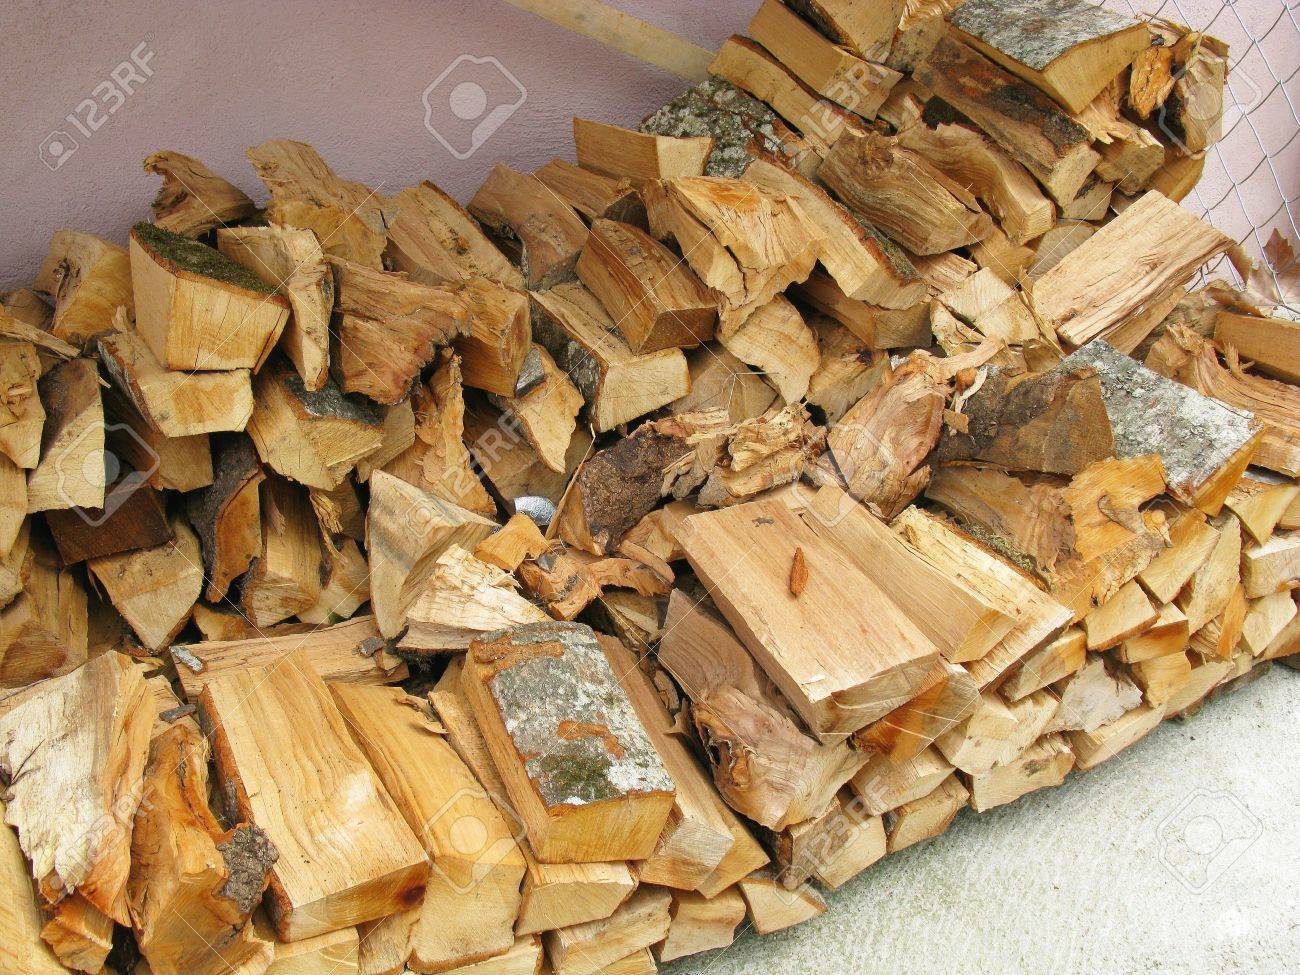 A storage wood for a fireplace Stock Photo - 5215066 - A Storage Wood For A Fireplace Stock Photo, Picture And Royalty